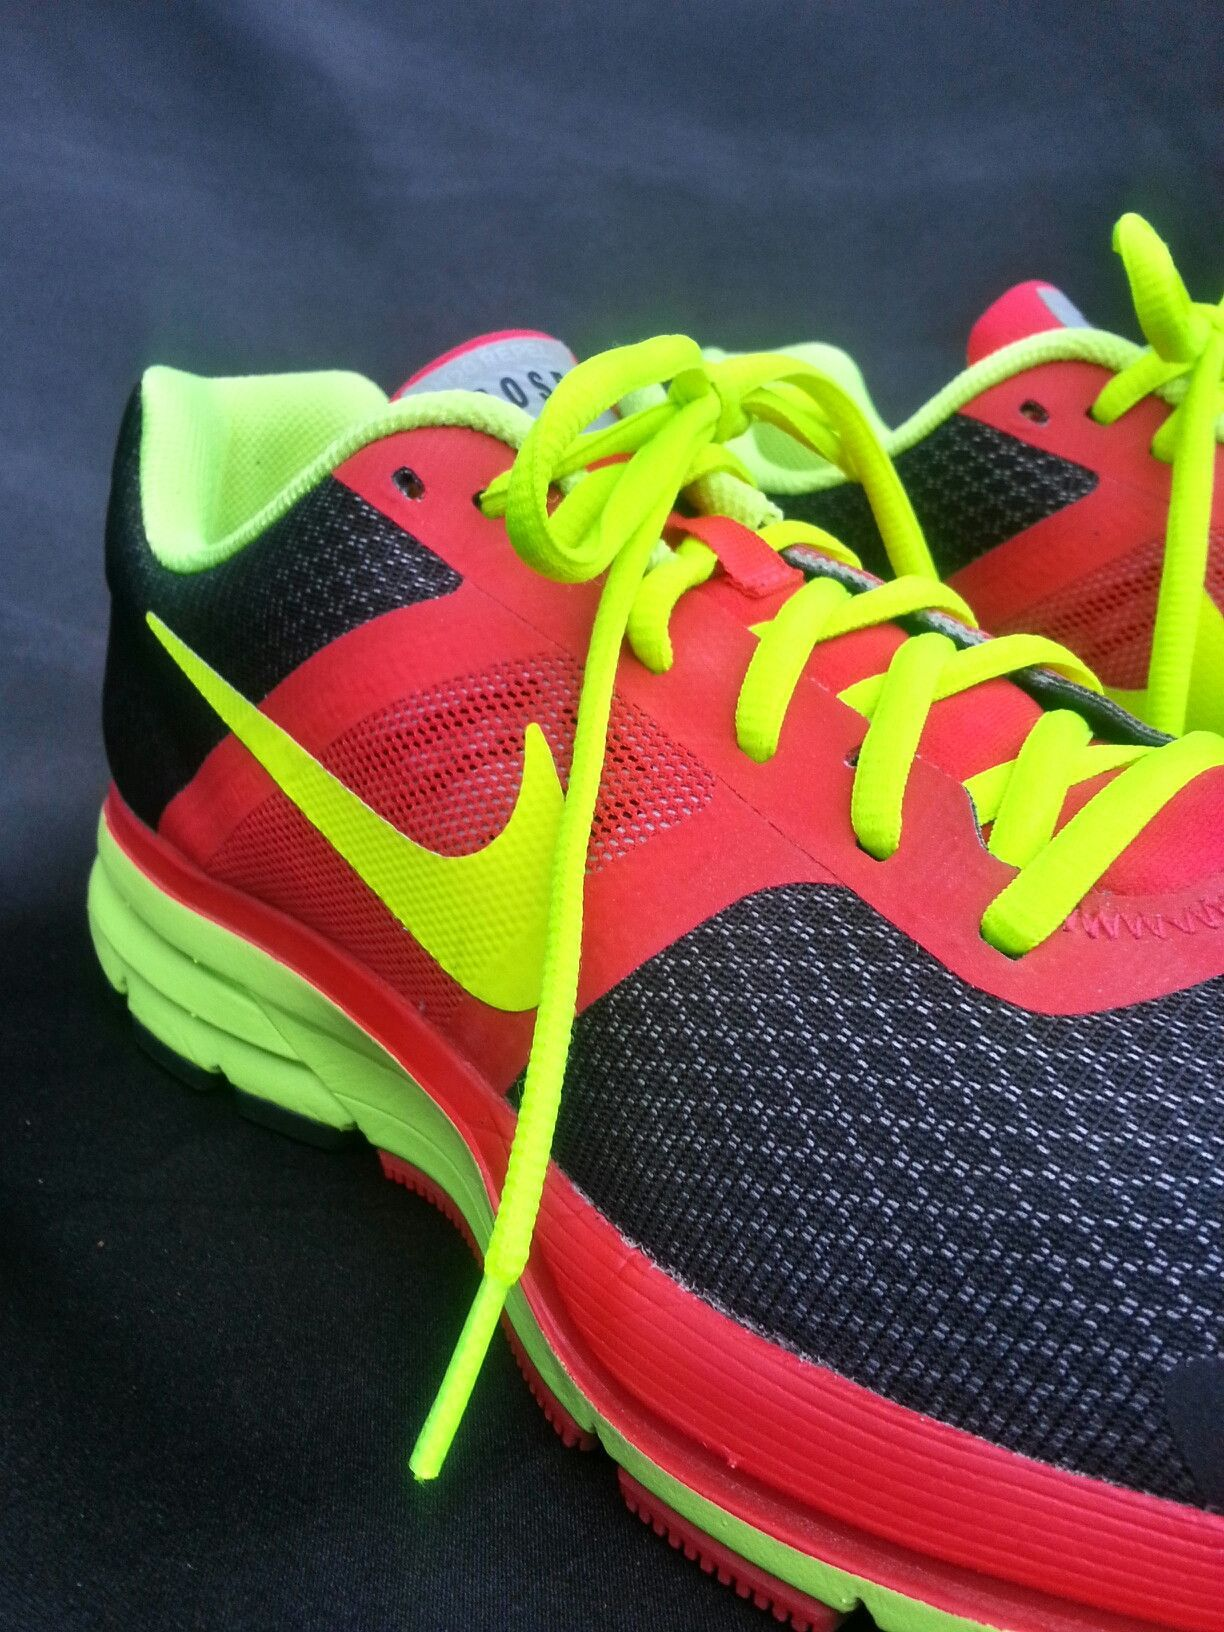 Nike Fitsole 2 Running Shoes - Men's 10